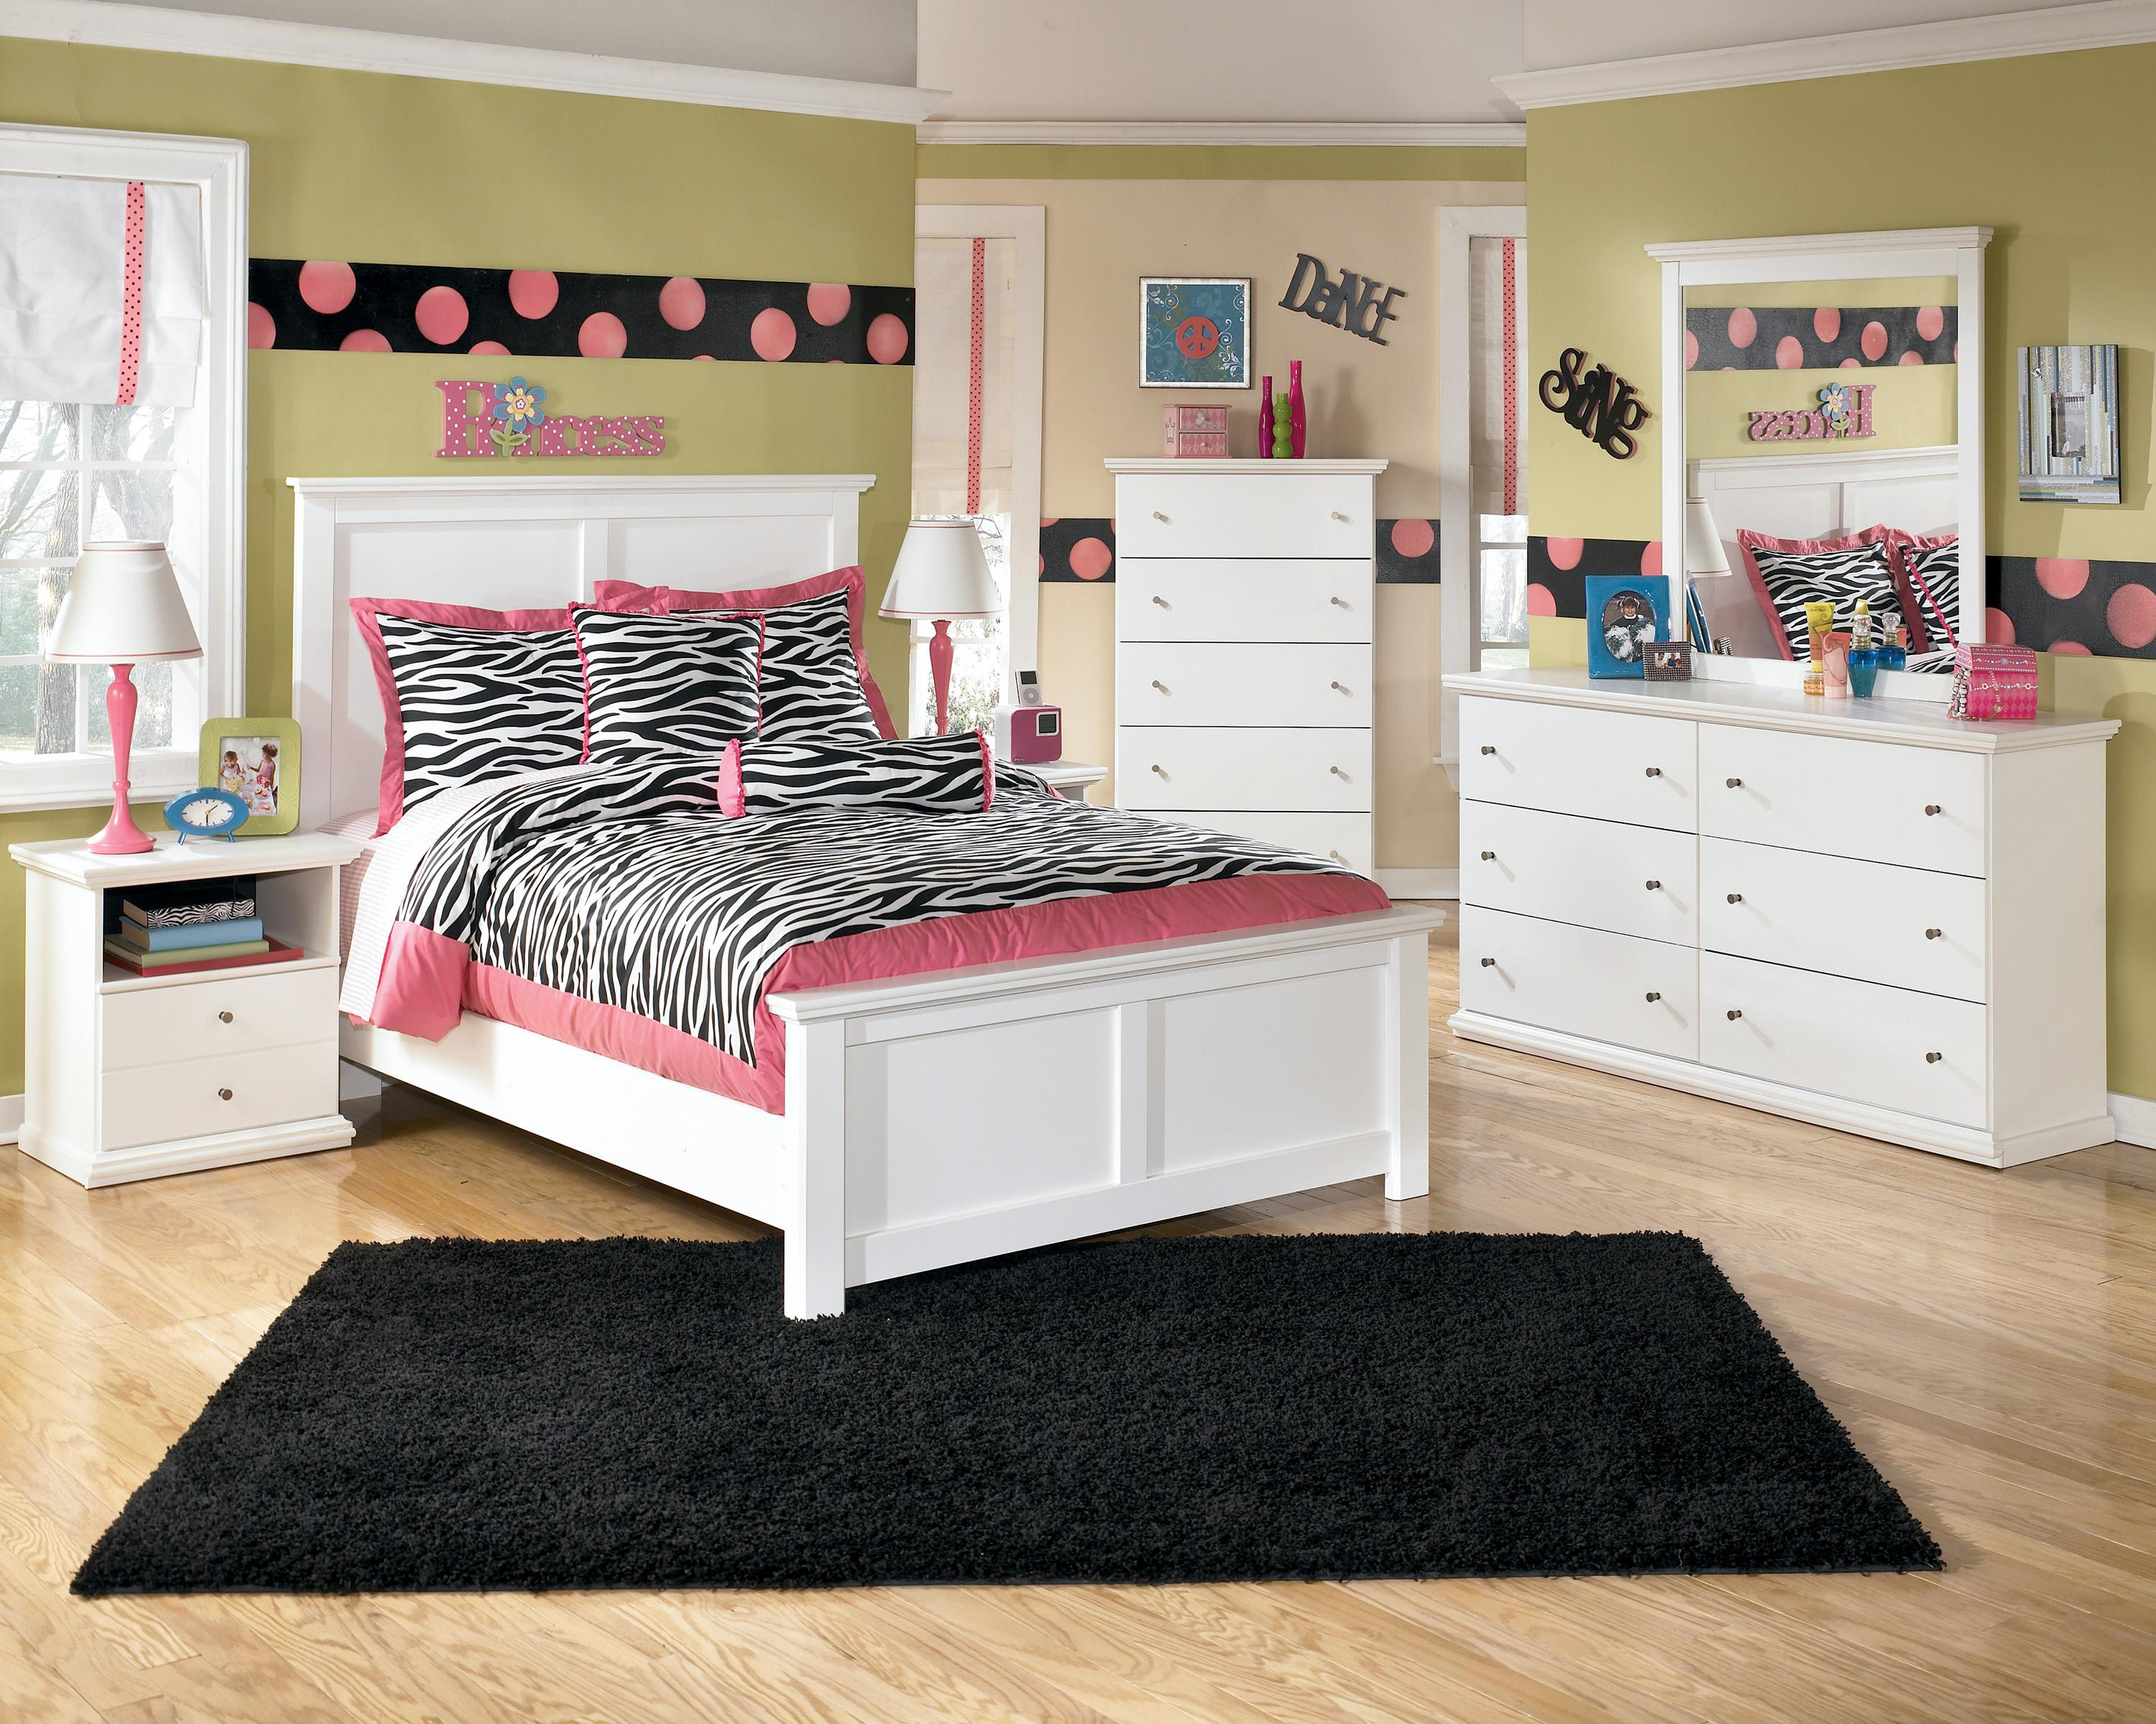 Signature Design by Ashley Bostwick Shoals Full Bedroom Group ...